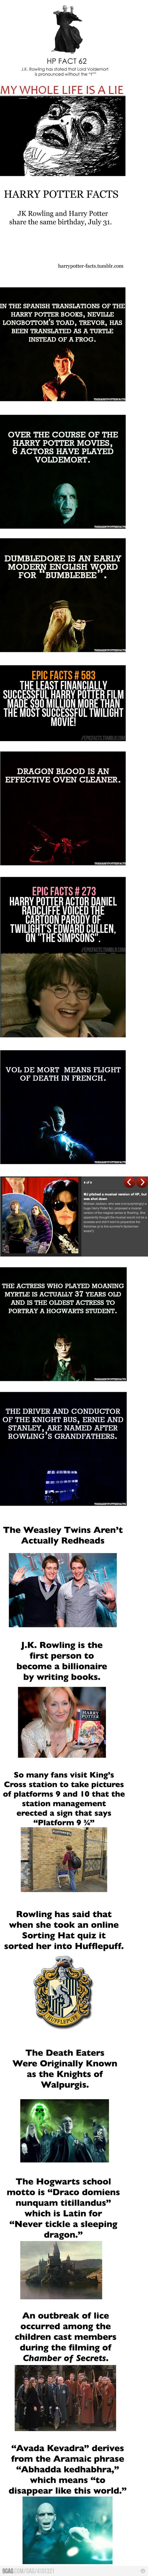 harry potter facts... The Voldemort pronunciation thing actually makes a lo of sense.